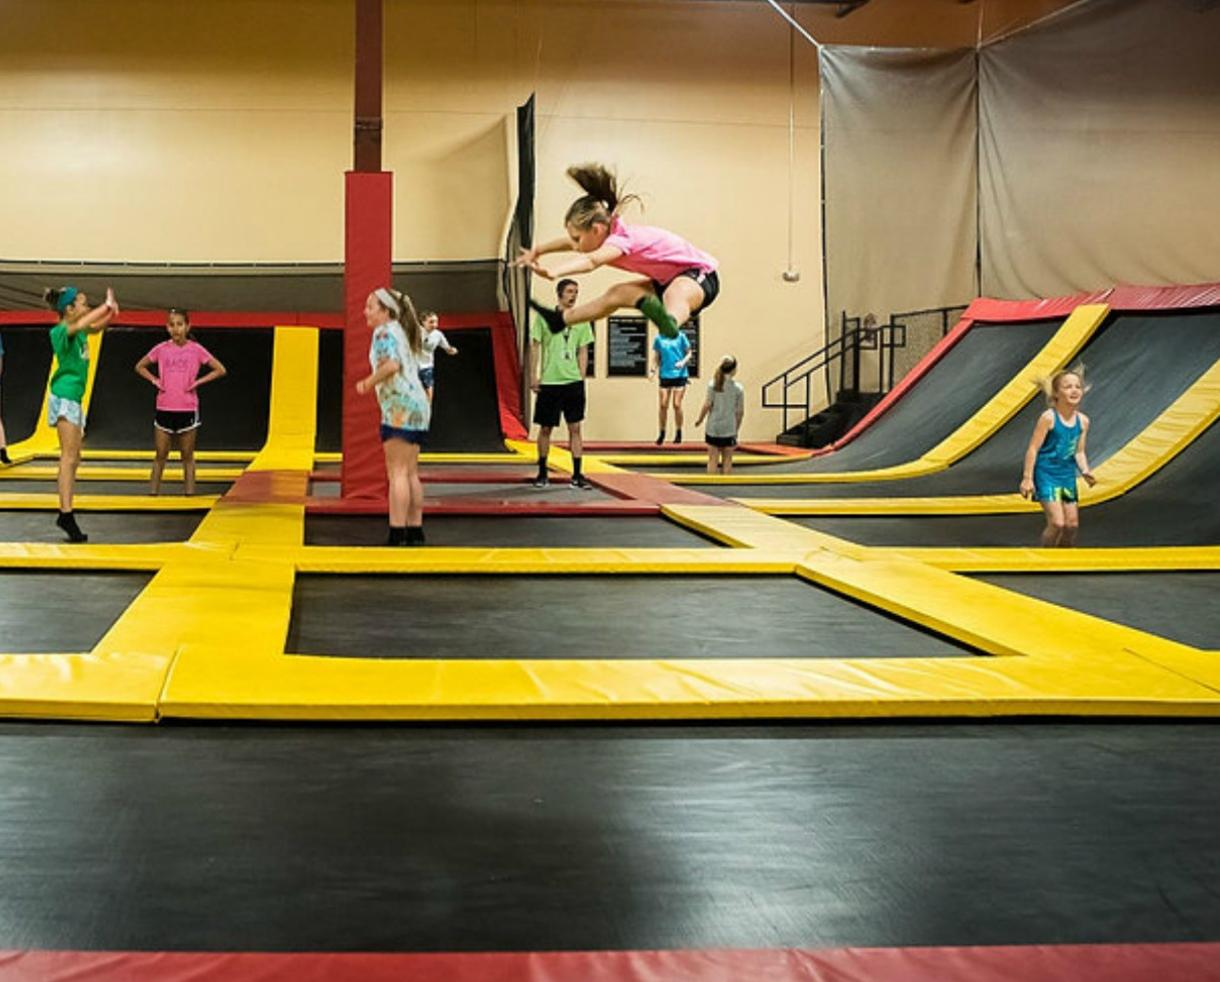 $18 for 60-Minute Jump Session for TWO People or $35 for FOUR People at Stratosphere Trampoline Park - Eldersburg (Up to 45% Off)